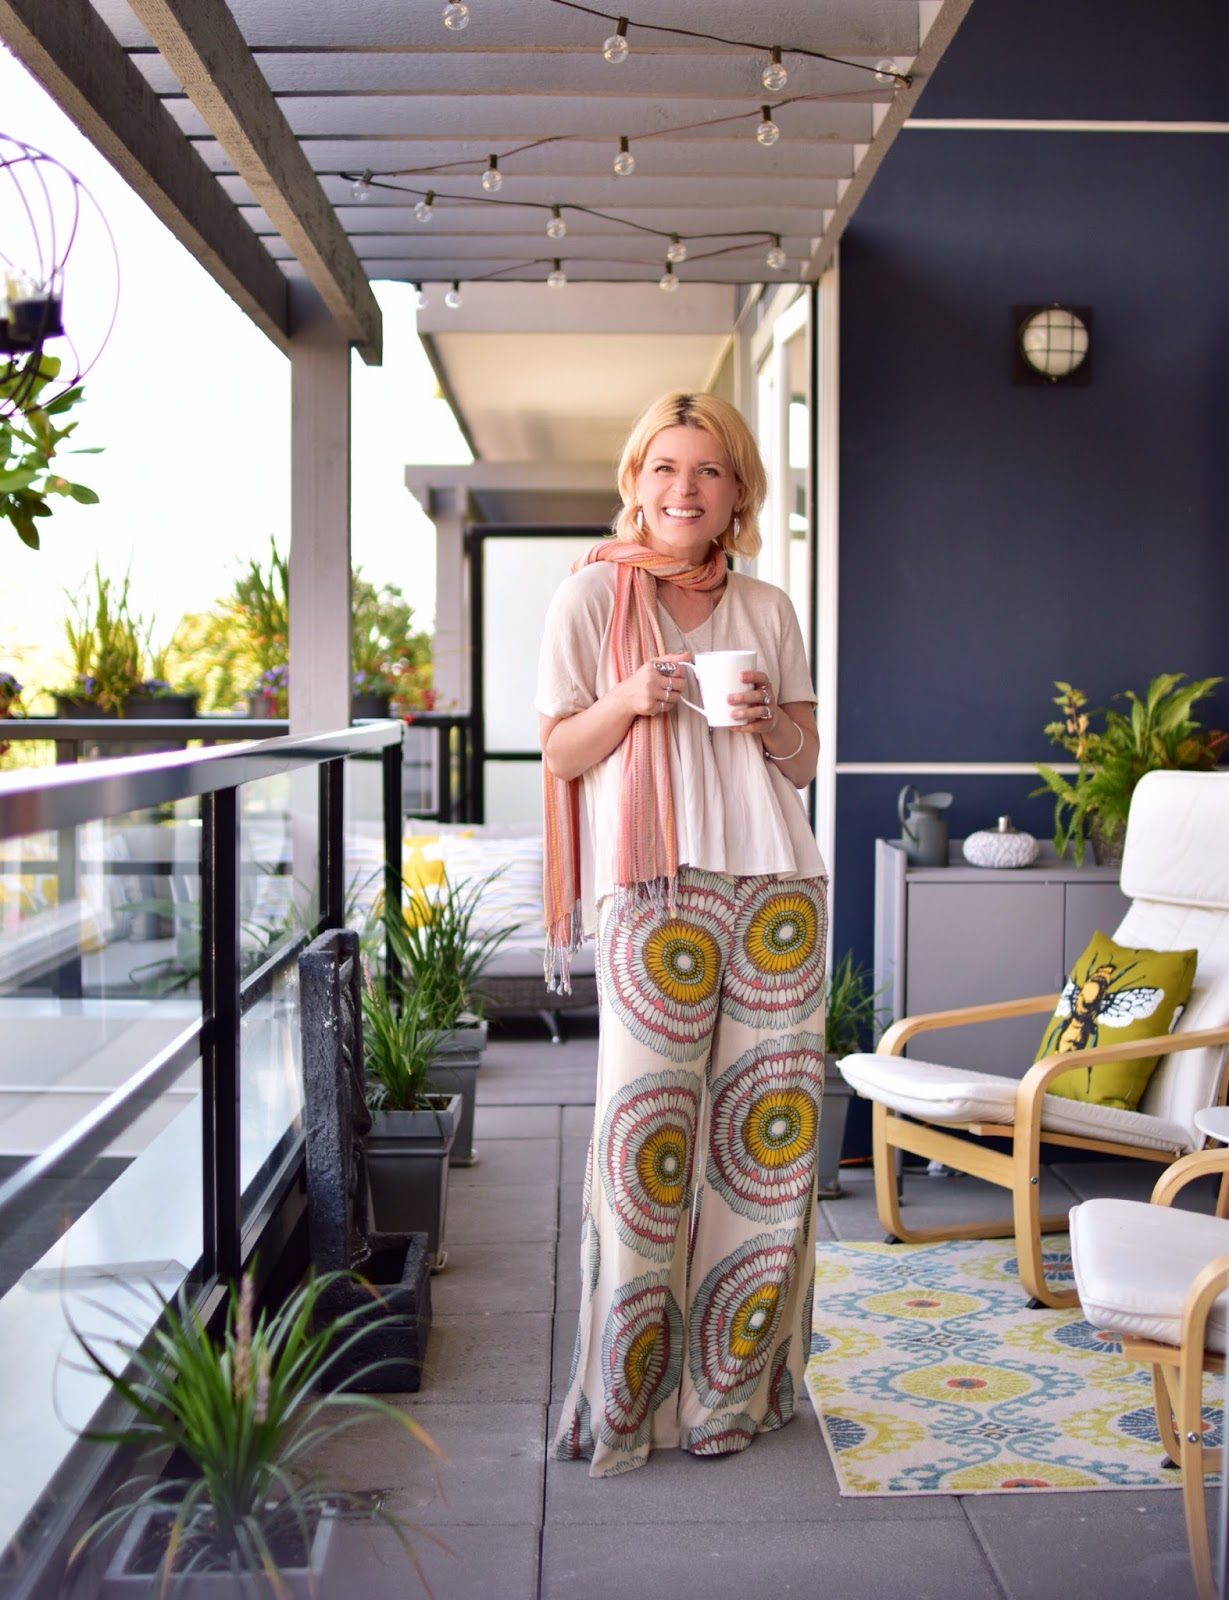 Monika Faulkner styles patterned palazzo pants with a Zara smock top, striped scarf, and platform slides